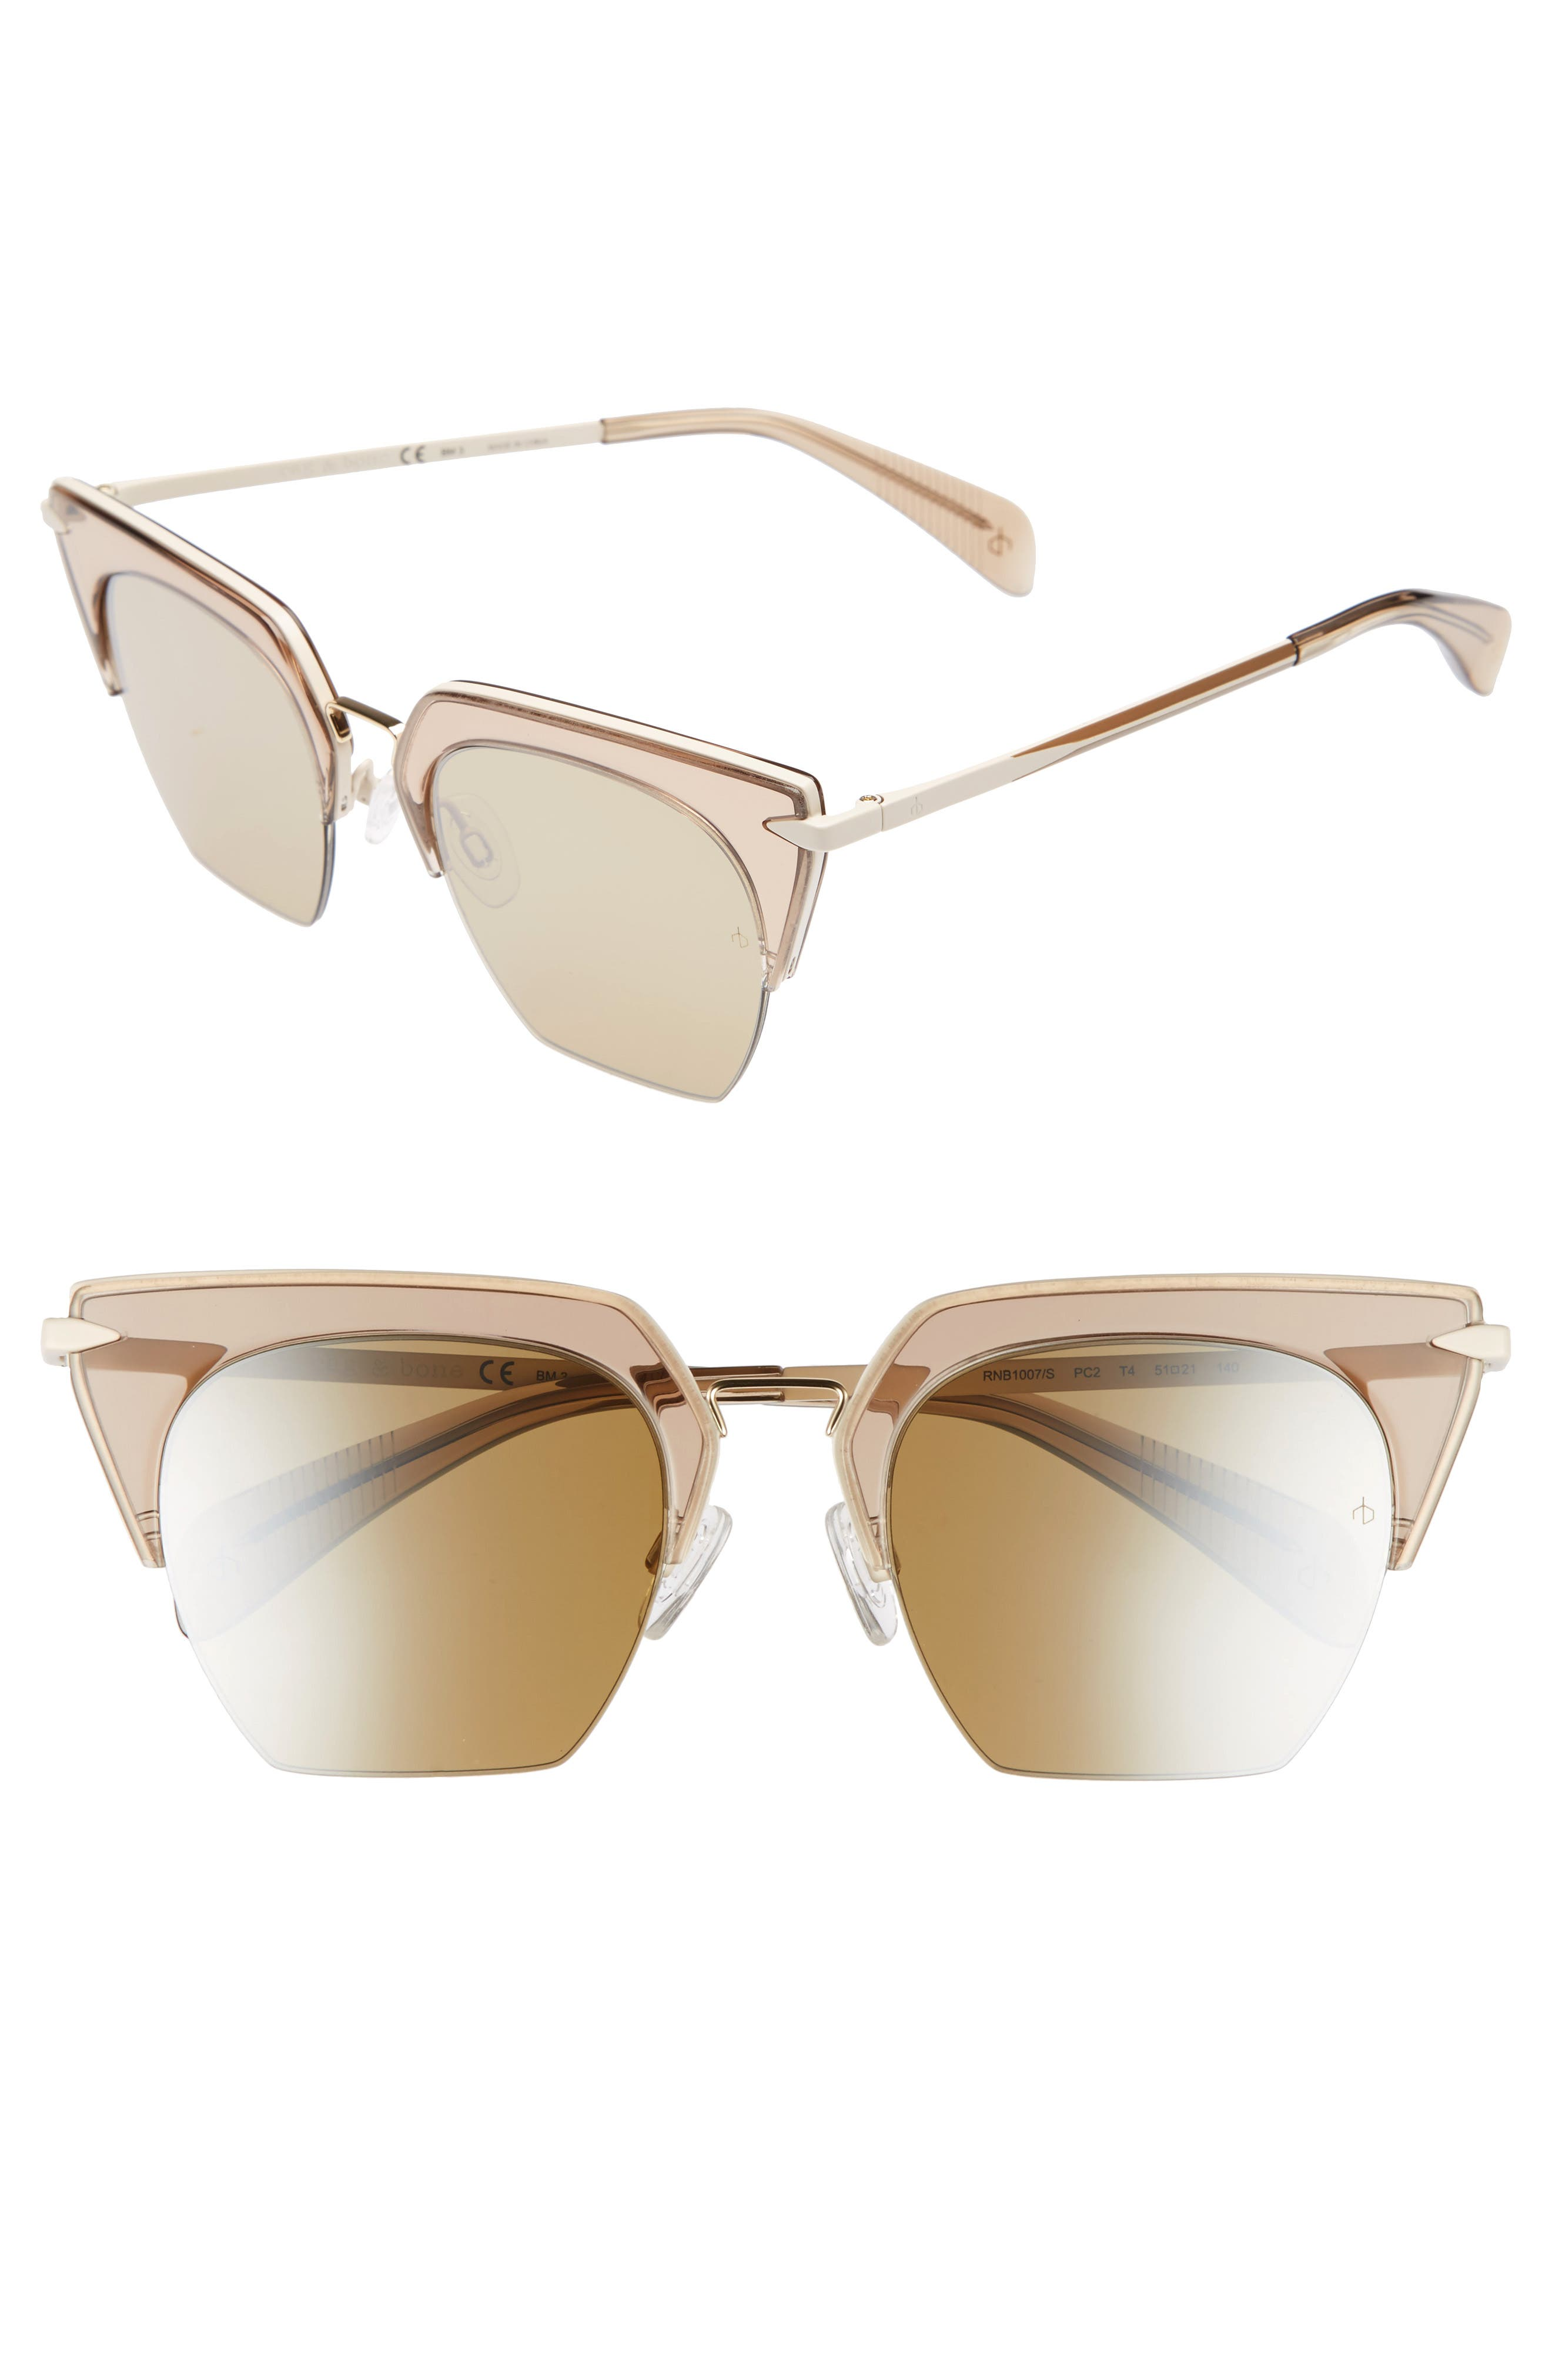 51mm Cat Eye Sunglasses,                             Main thumbnail 1, color,                             OPAL BROWN